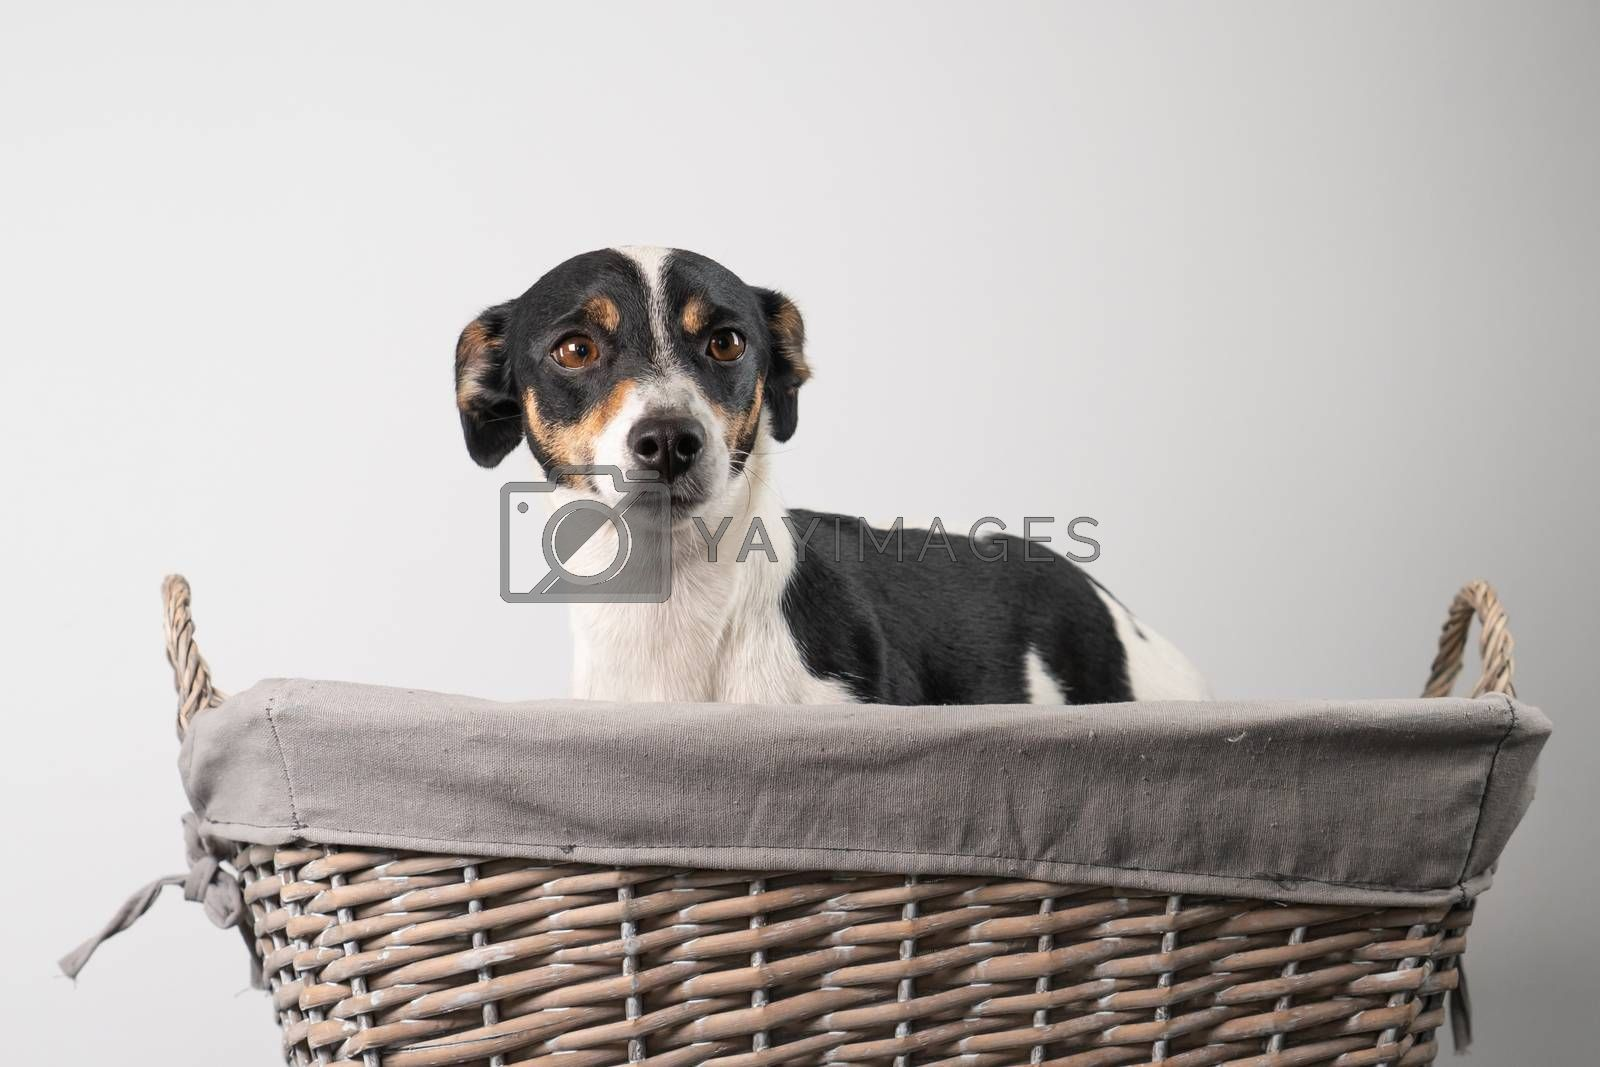 Brown, black and white, young Jack Russell Terrier in a basket on a white background, half body.